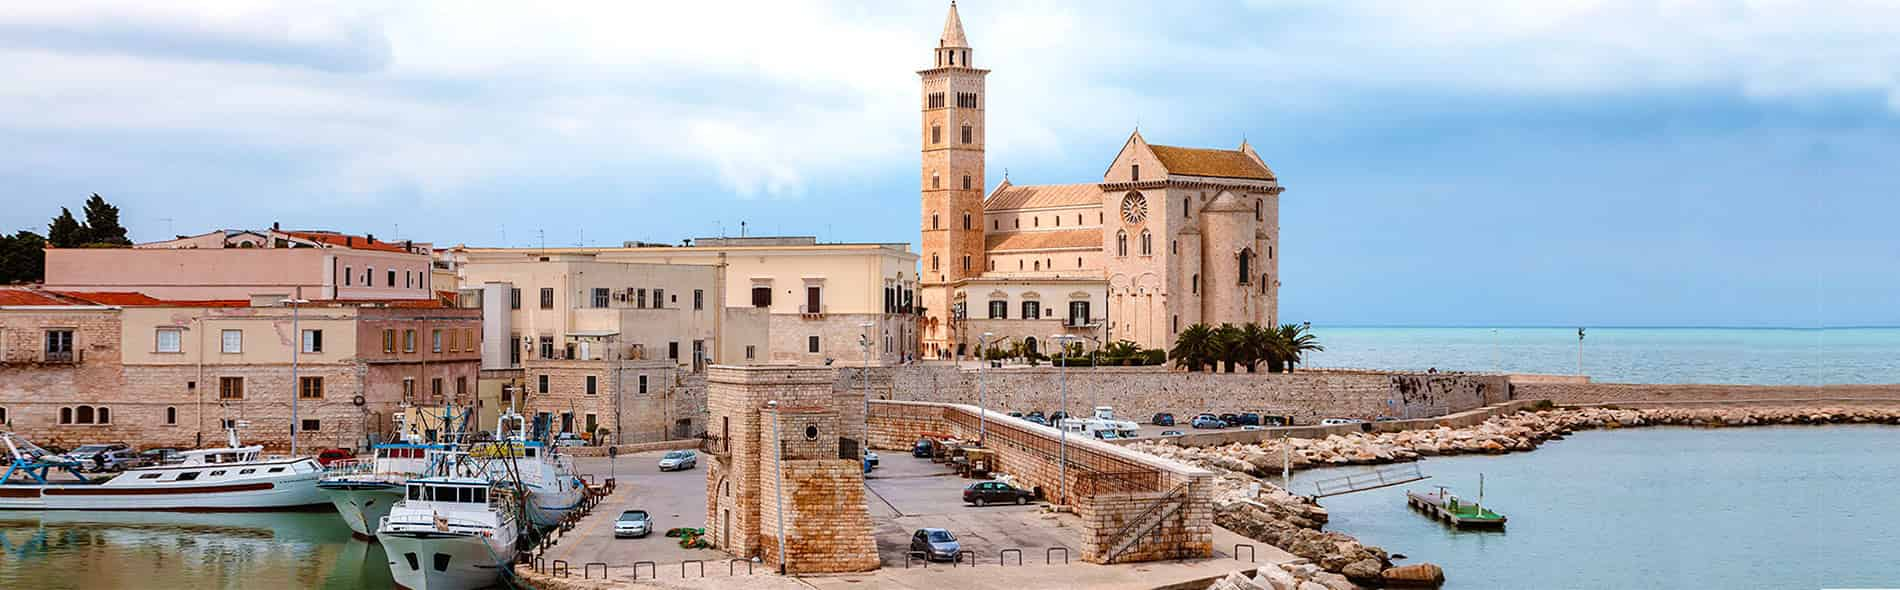 Castel del Monte walking tour